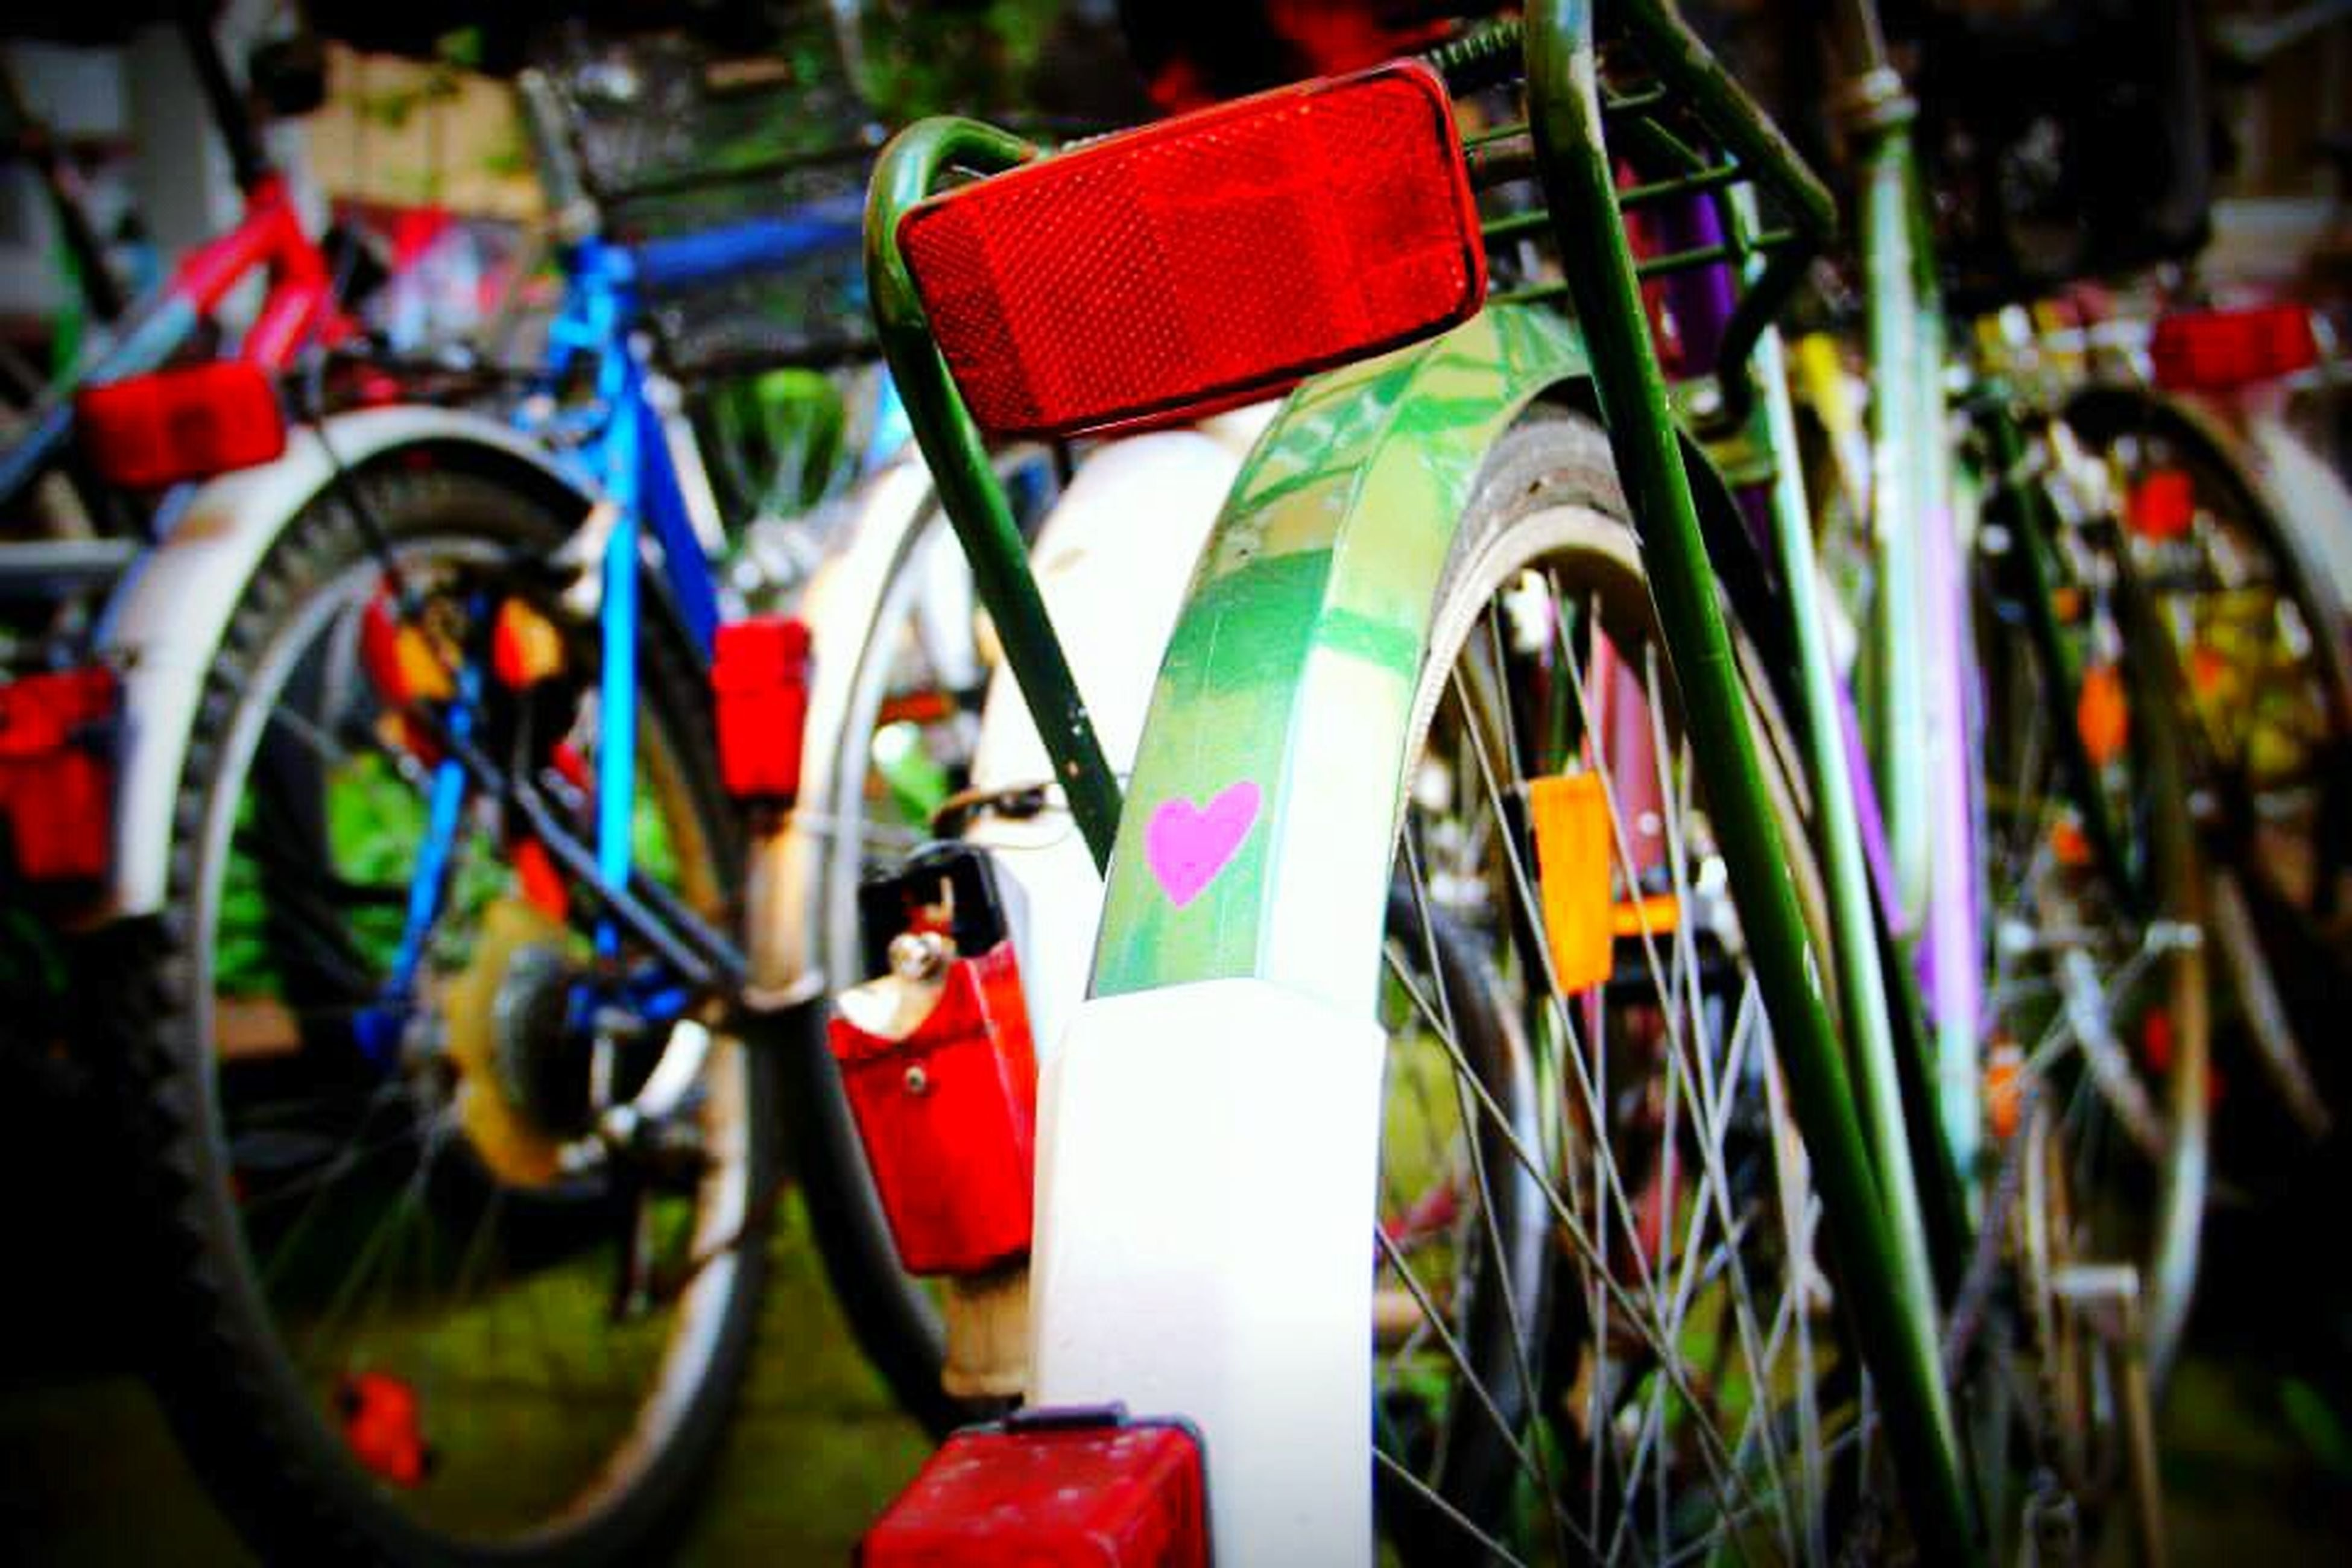 transportation, land vehicle, bicycle, mode of transport, focus on foreground, red, street, stationary, parking, car, selective focus, multi colored, close-up, parked, day, outdoors, road, no people, safety, motorcycle